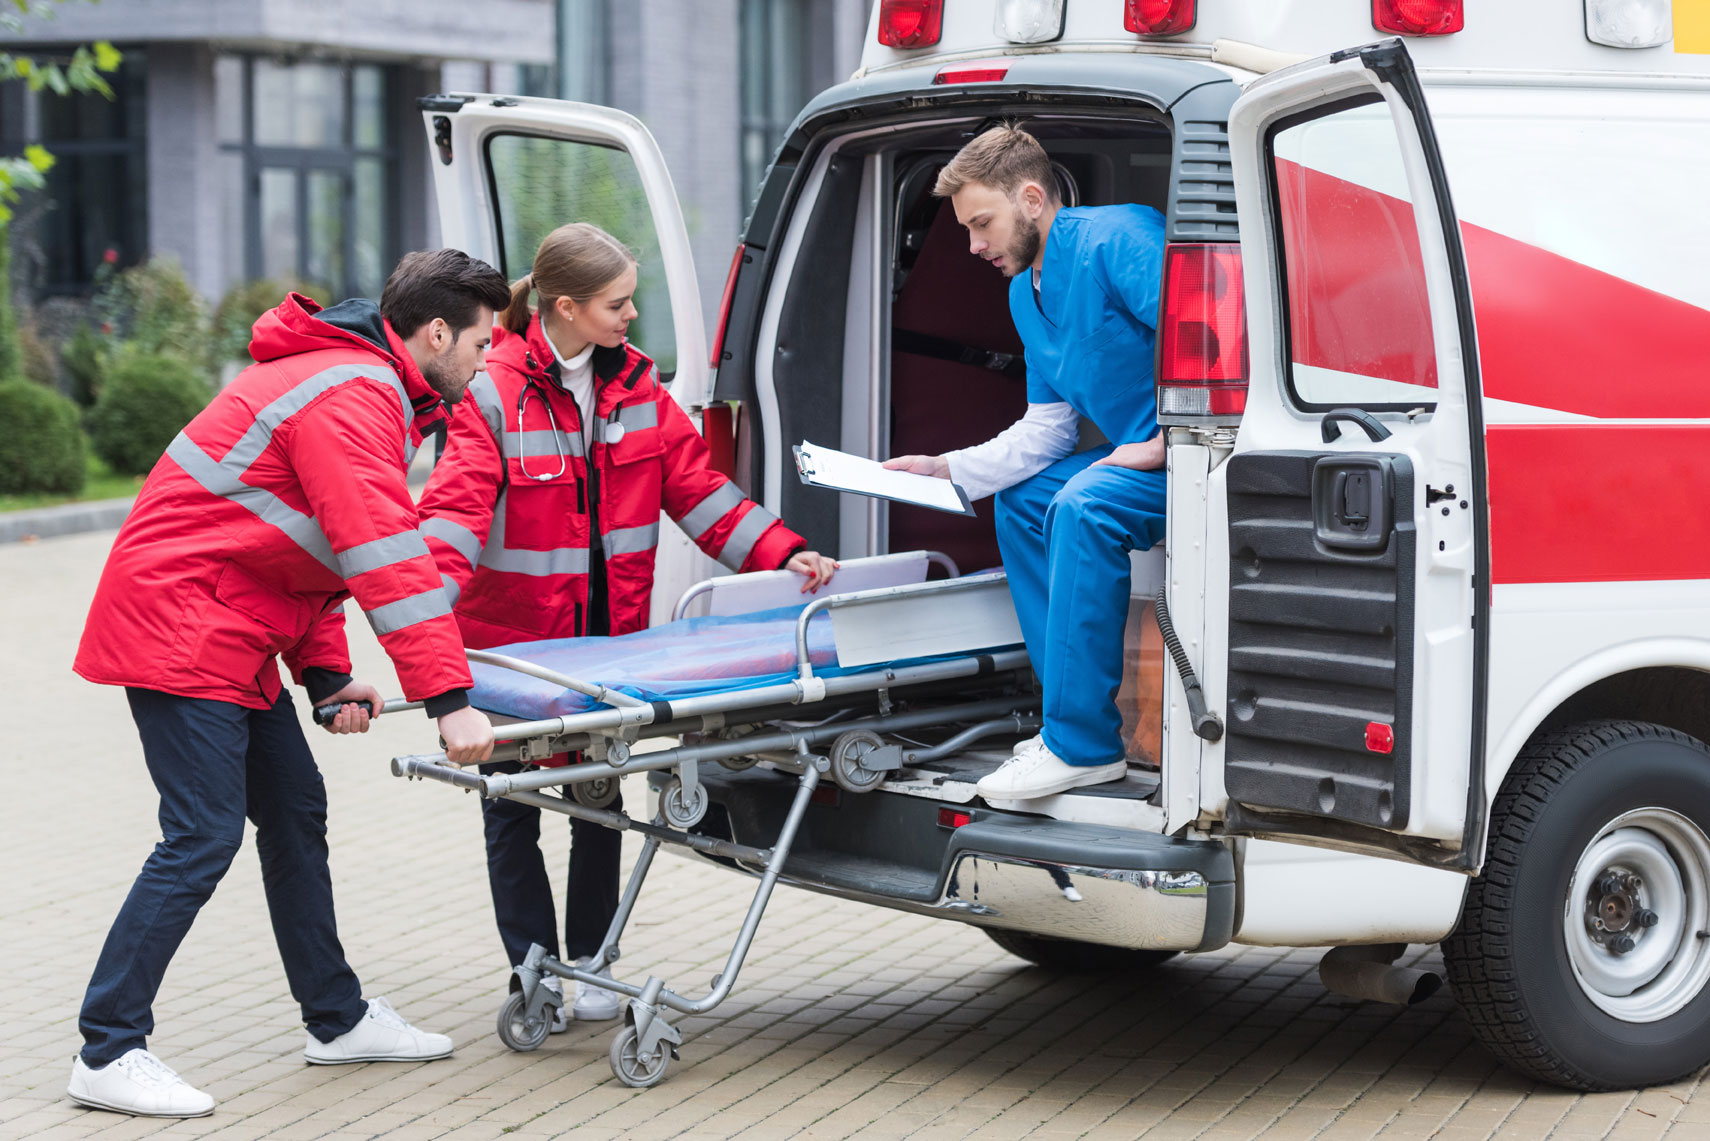 Paramedics Unloading a Stretcher From an Ambulance | Medical Equipment Services in Houston, TX